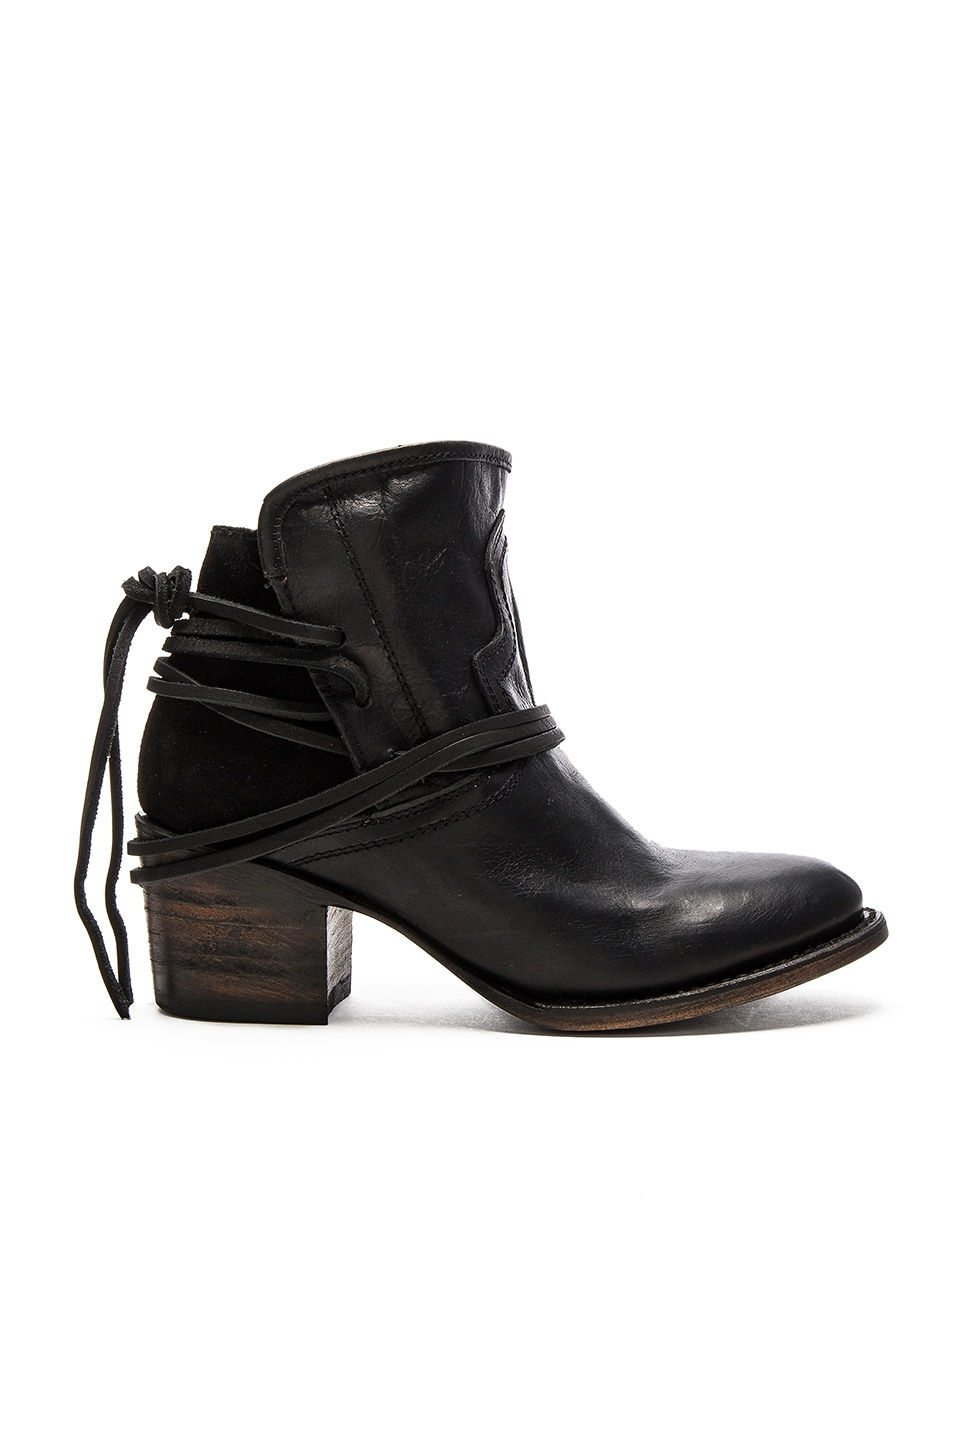 Freebird by Steven Casey Bootie in Black